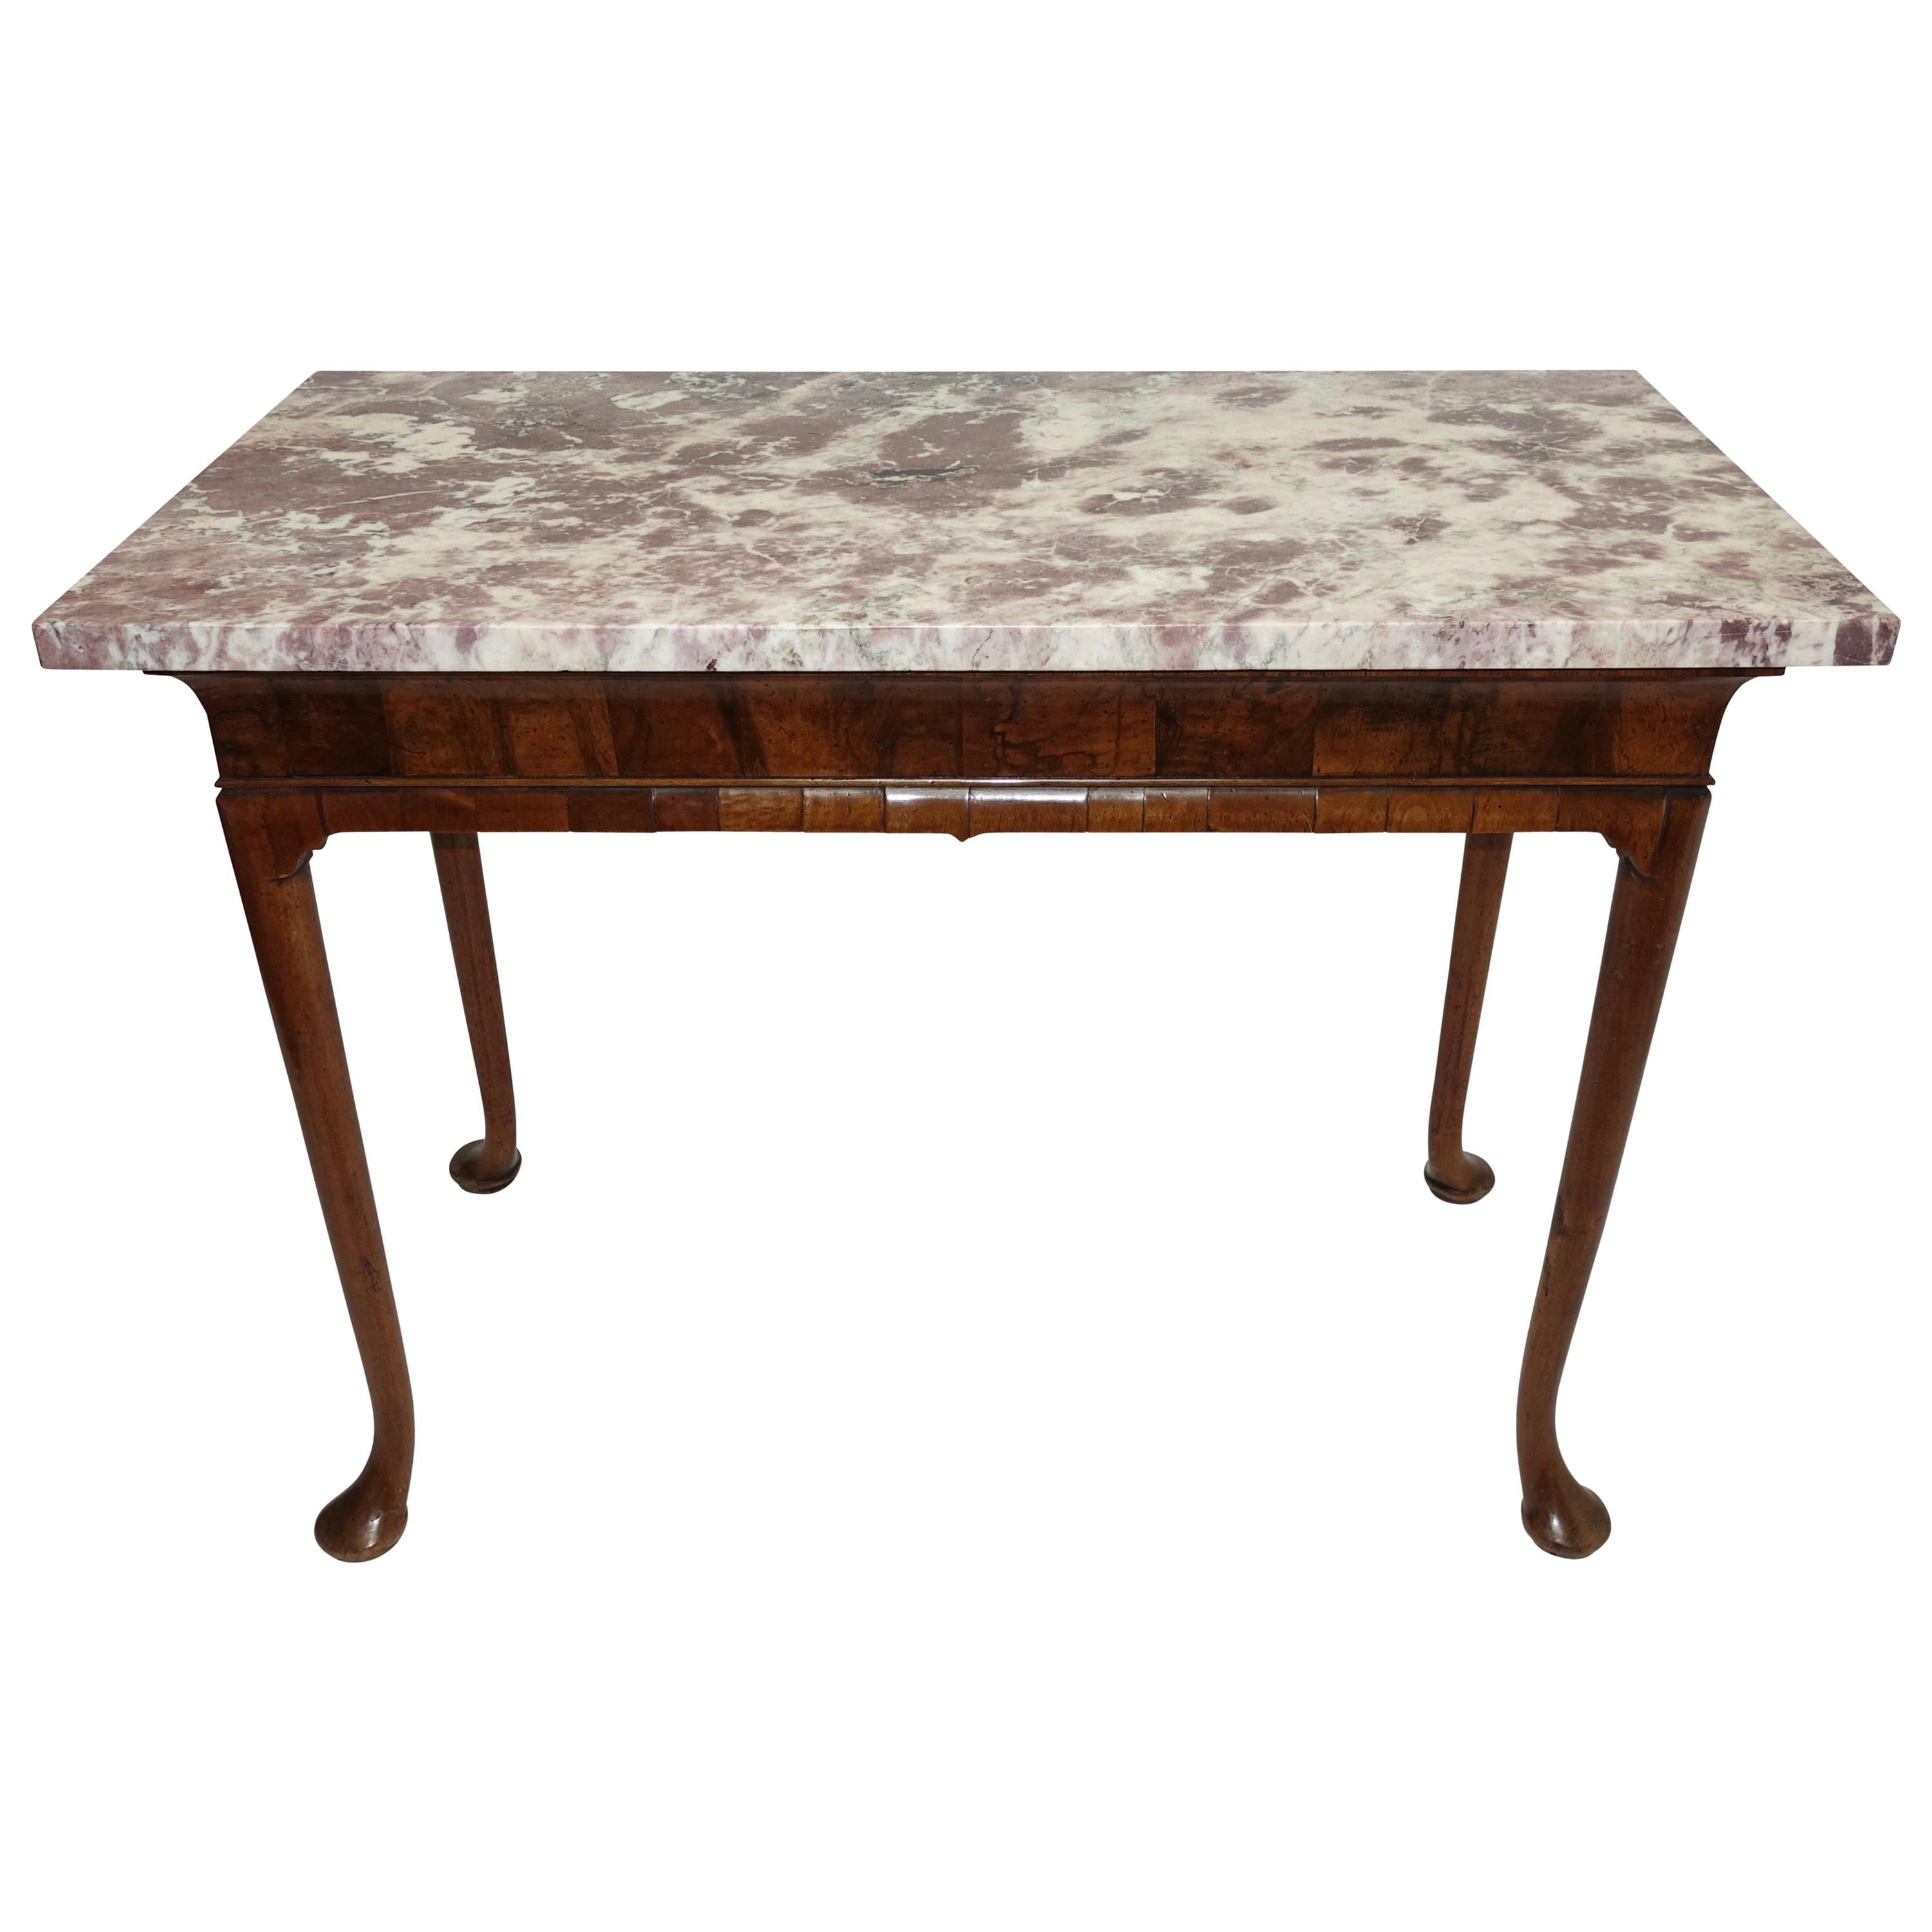 George II Period Walnut Pier / Console Table with Marble Top